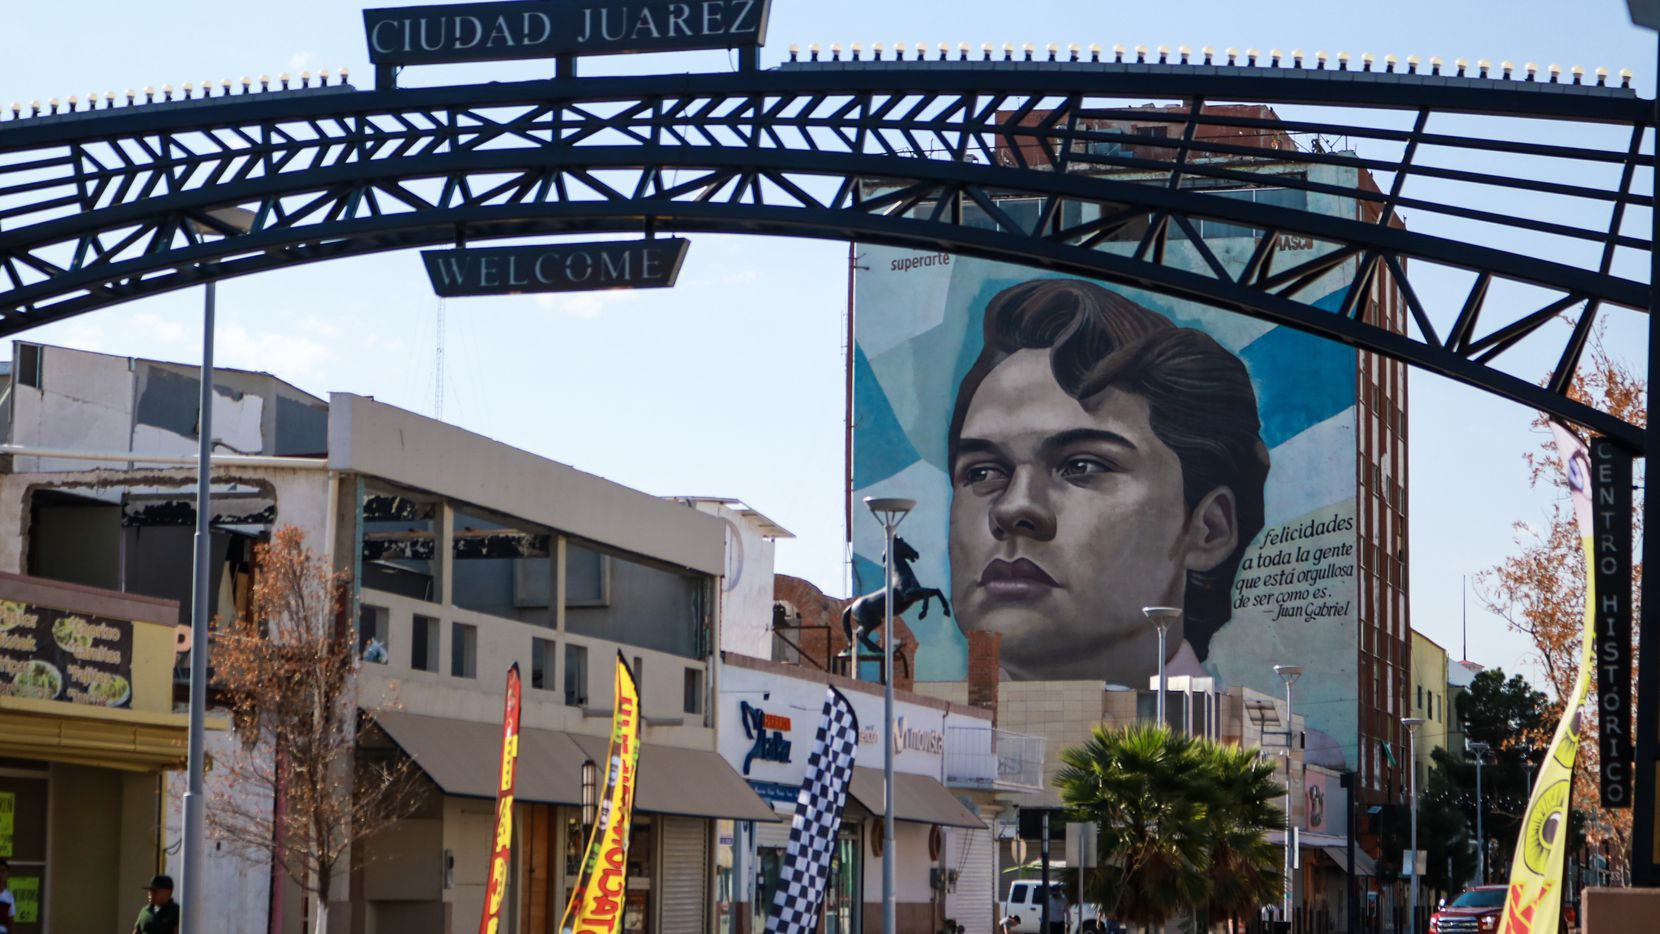 A mural of Juan Gabriel appears on the side of a building on Avenida Juárez, near the former location of Noa Noa, the bar where the artist's musical career began in Ciudad Juárez, Mexico.